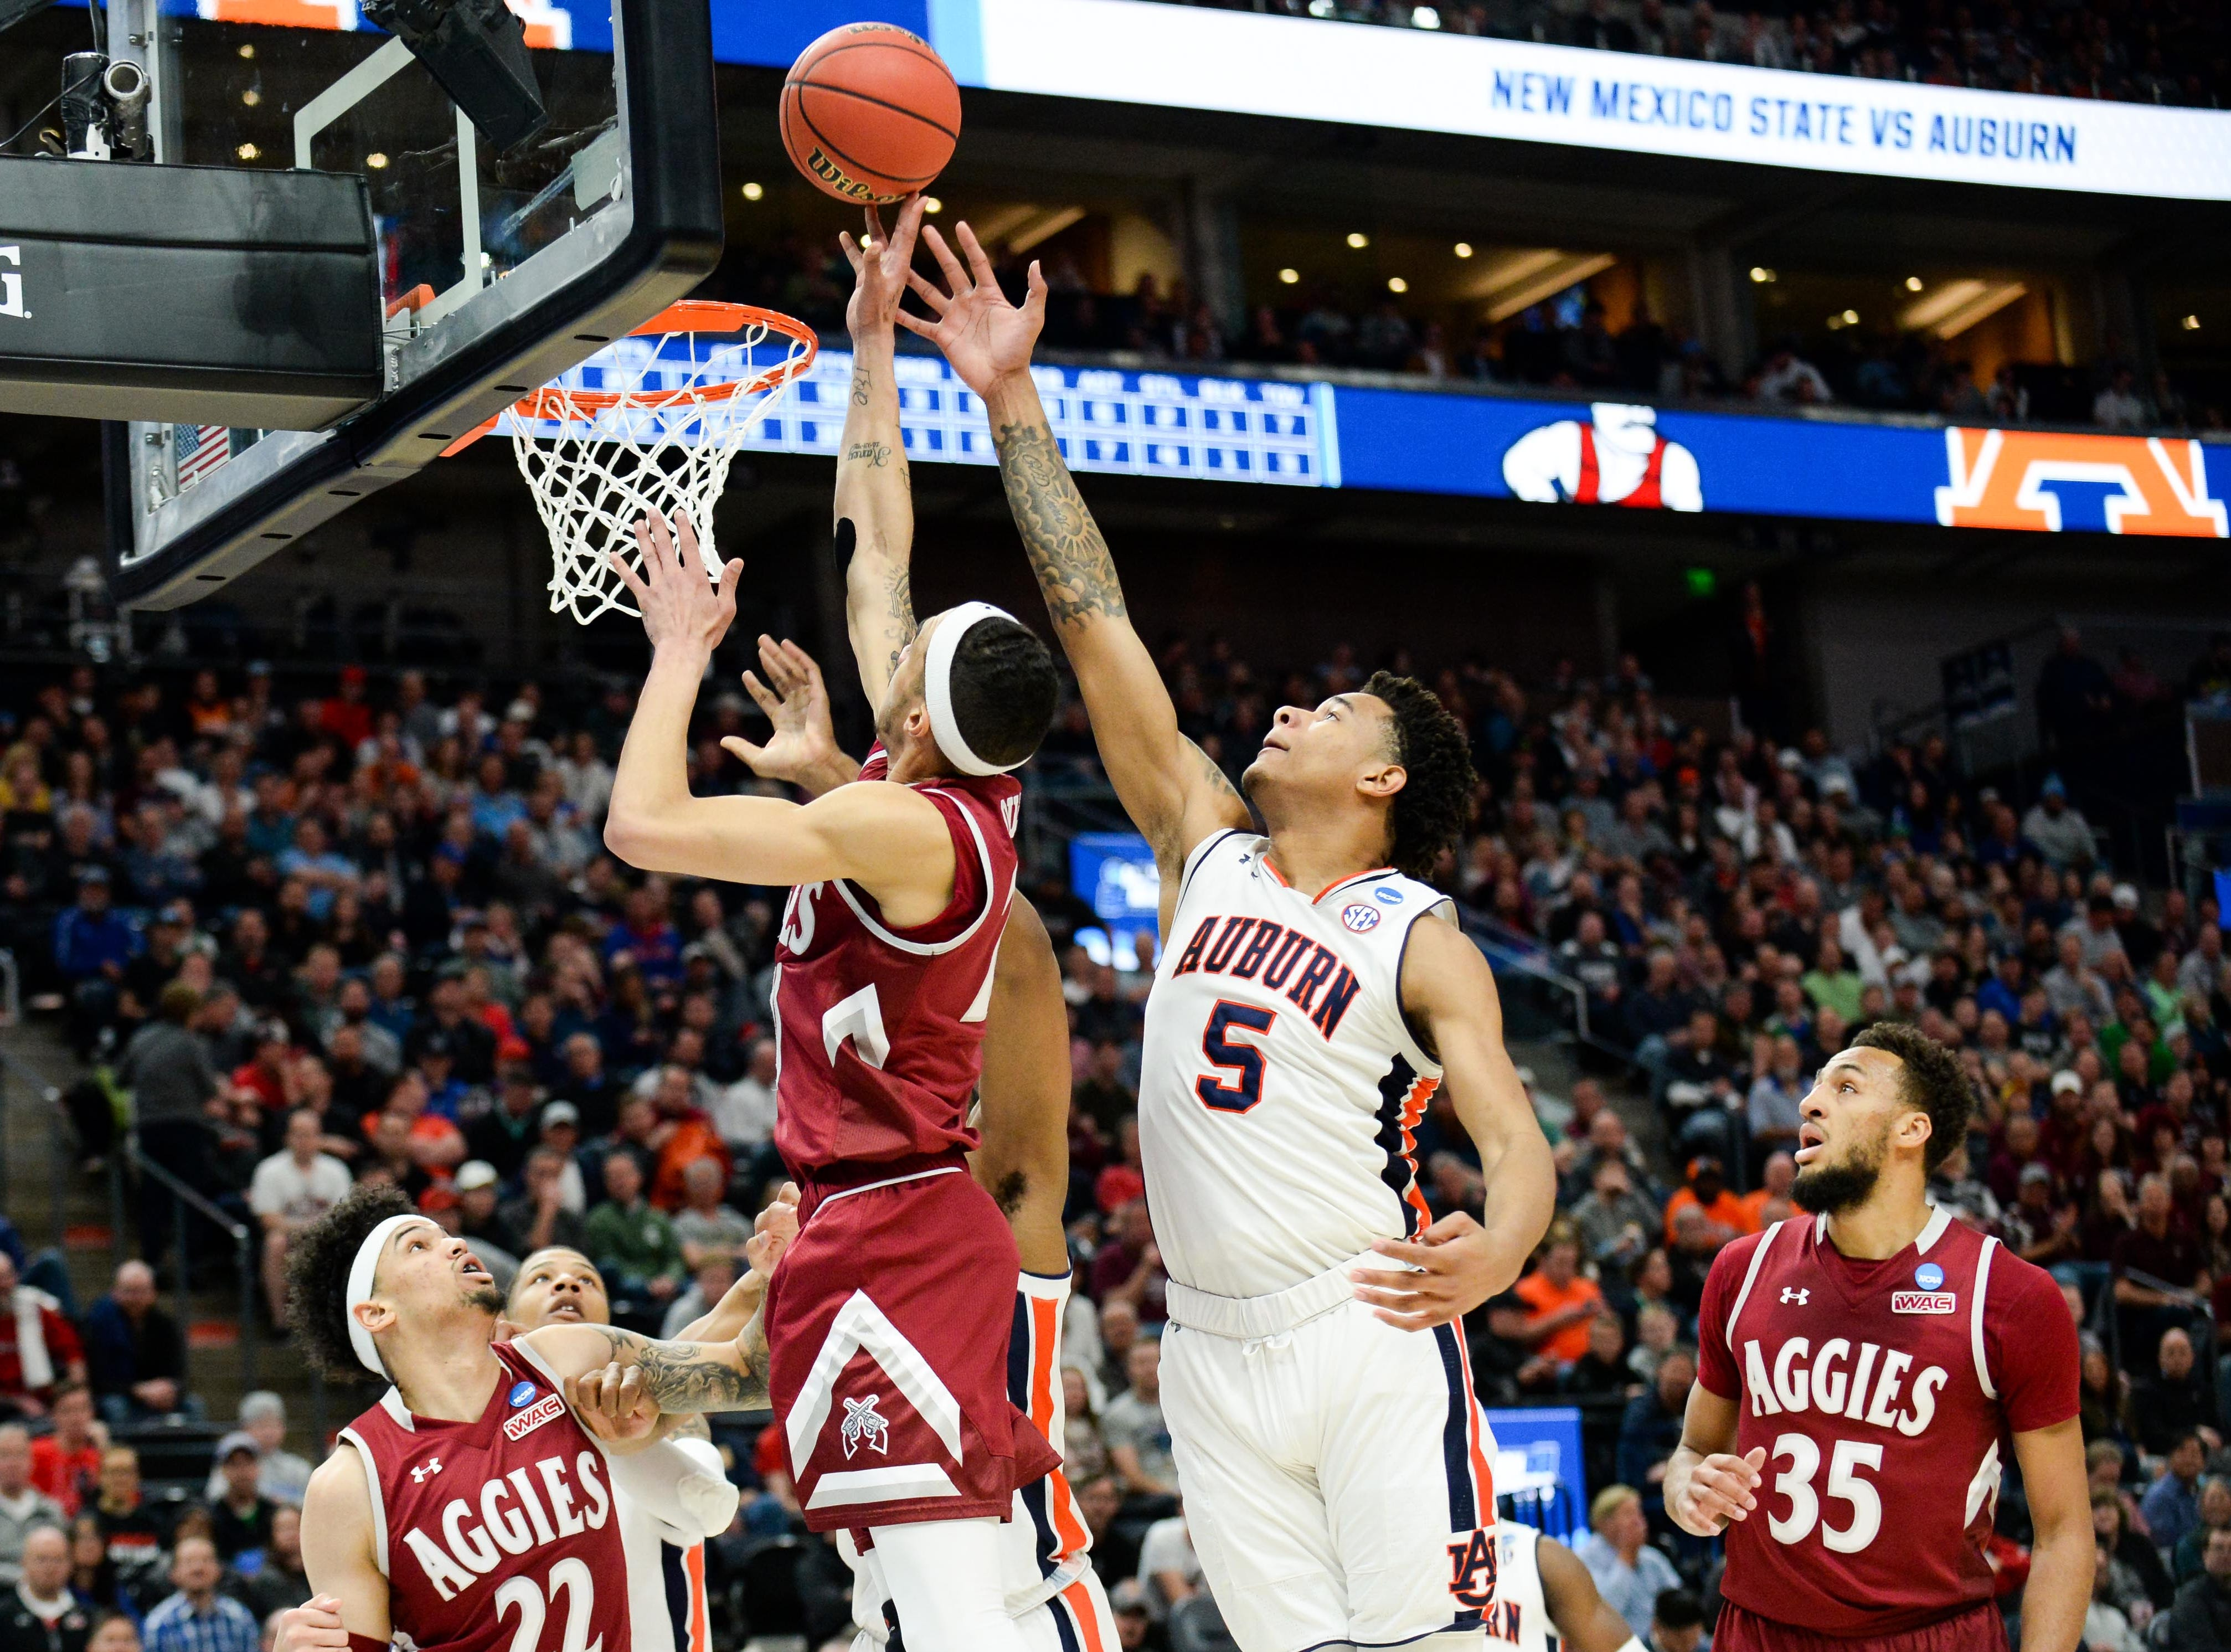 Mar 21, 2019; Salt Lake City, UT, USA; New Mexico State Aggies guard Trevelin Queen (20) goes for a shot ahead of Auburn Tigers forward Chuma Okeke (5) during the first half in the first round of the 2019 NCAA Tournament at Vivint Smart Home Arena. Mandatory Credit: Gary A. Vasquez-USA TODAY Sports